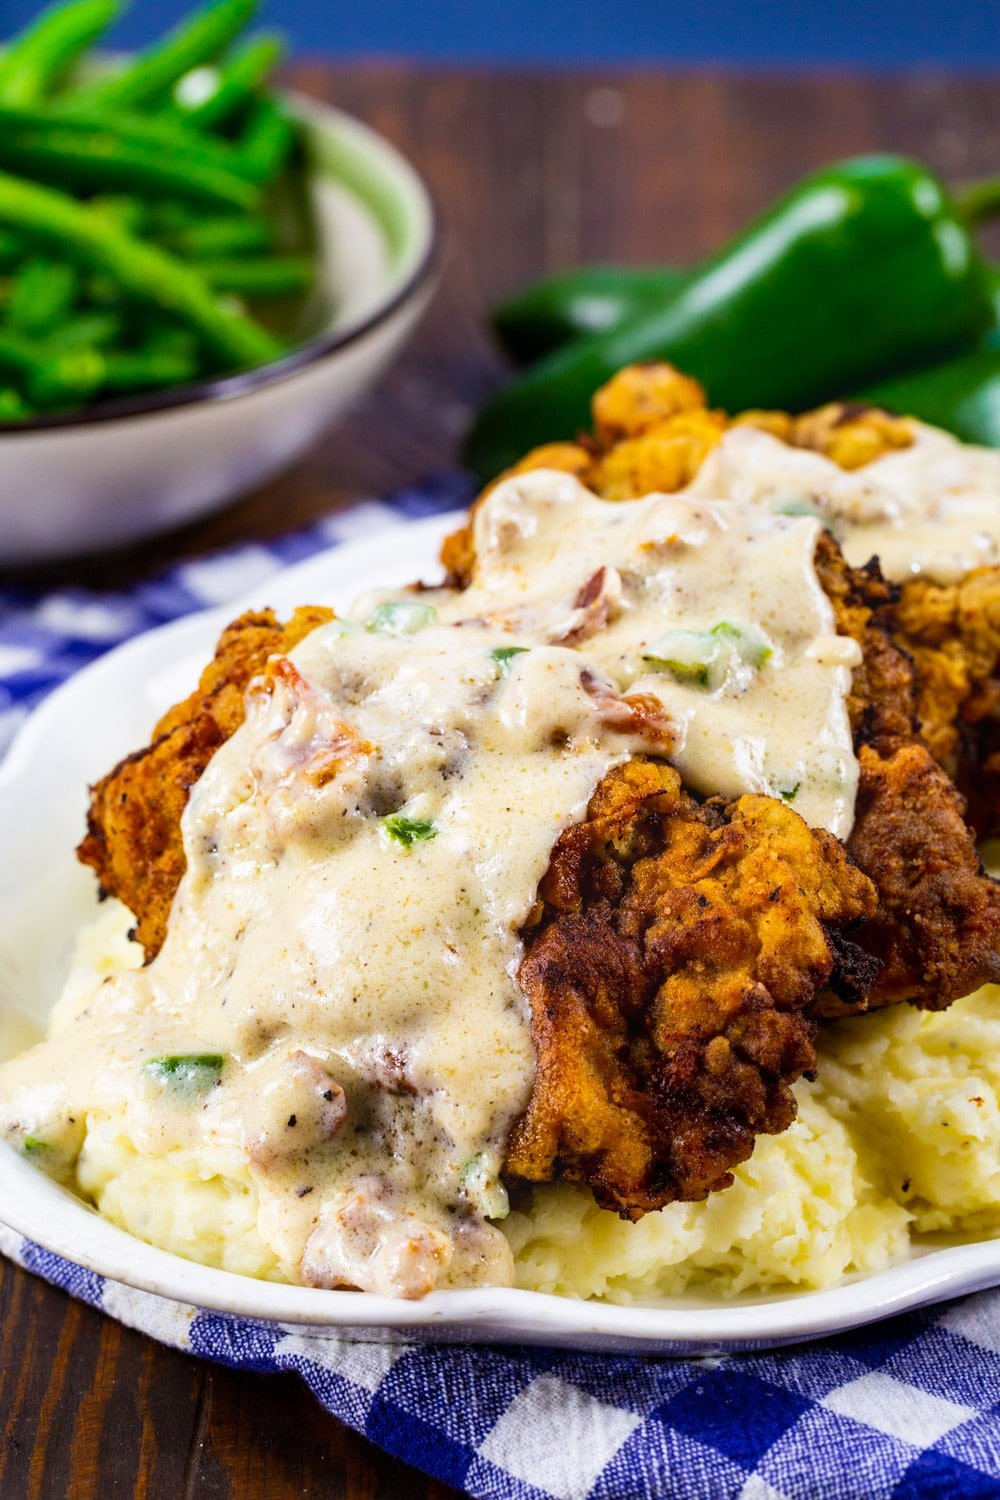 Chicken Fried Steak on a serving platter with bowl of green beans in background.